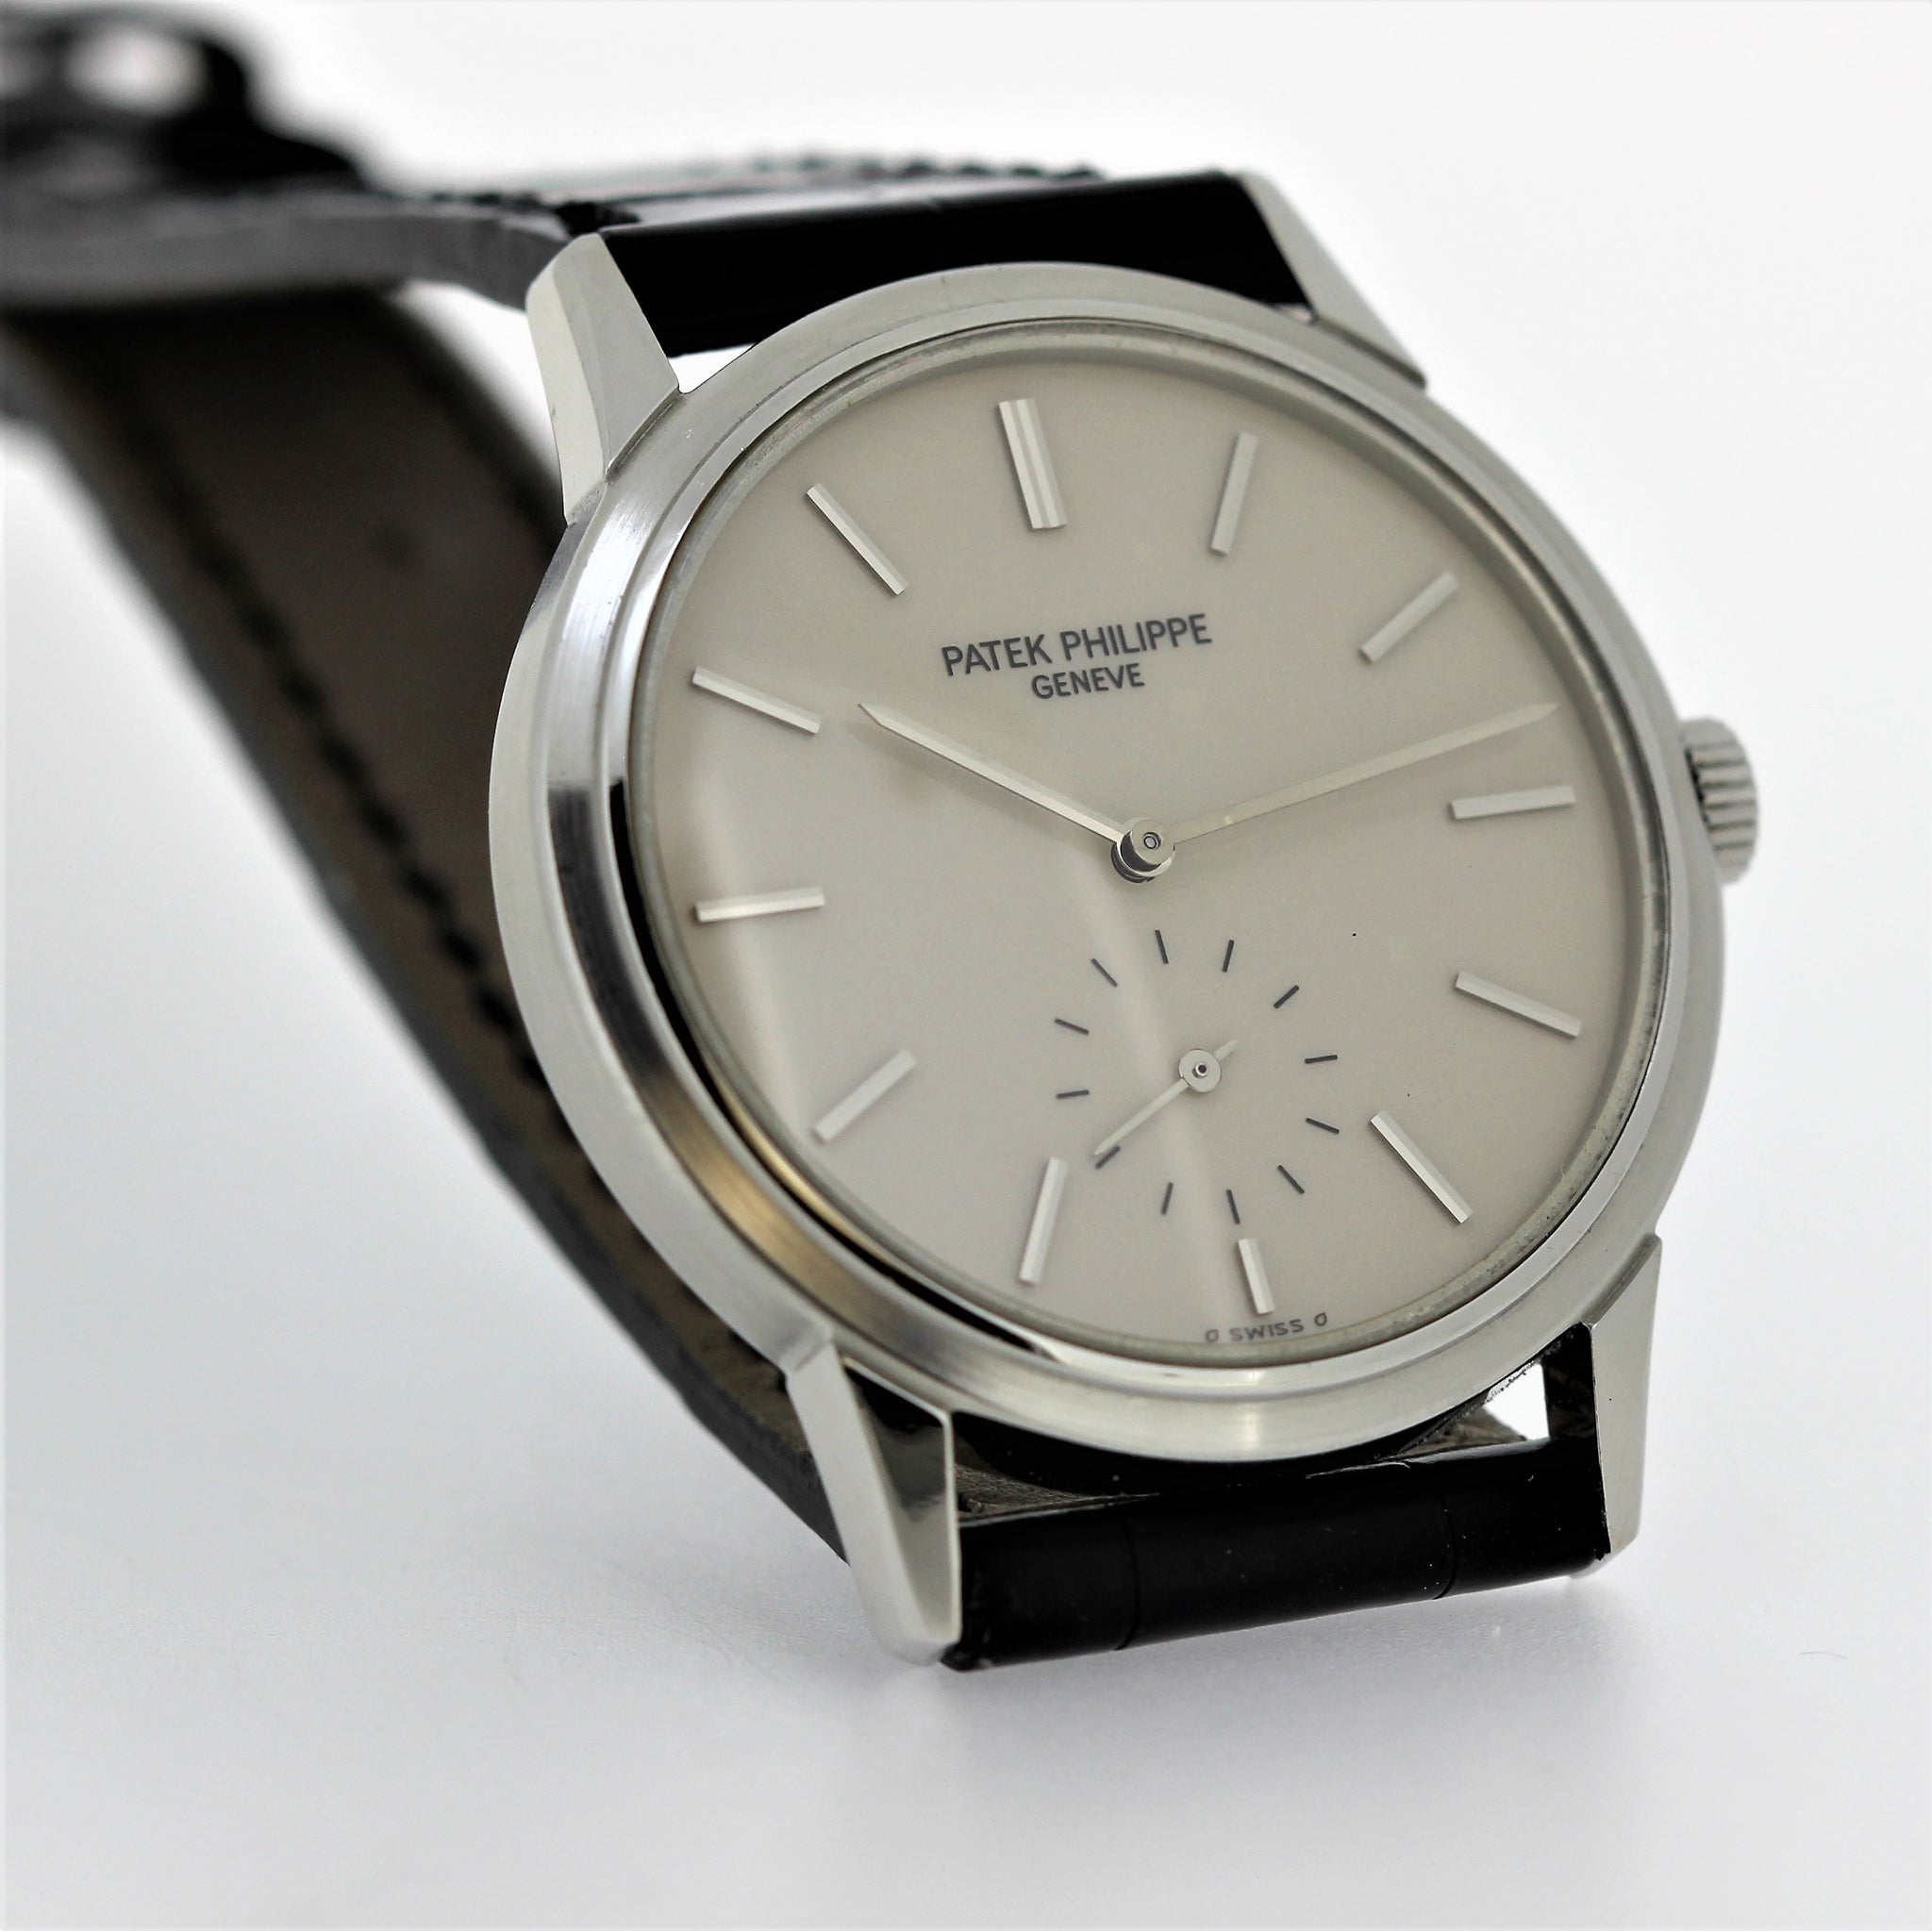 Patek Philippe 3718A Stainless Steel Watch - Made for the Japanese Market